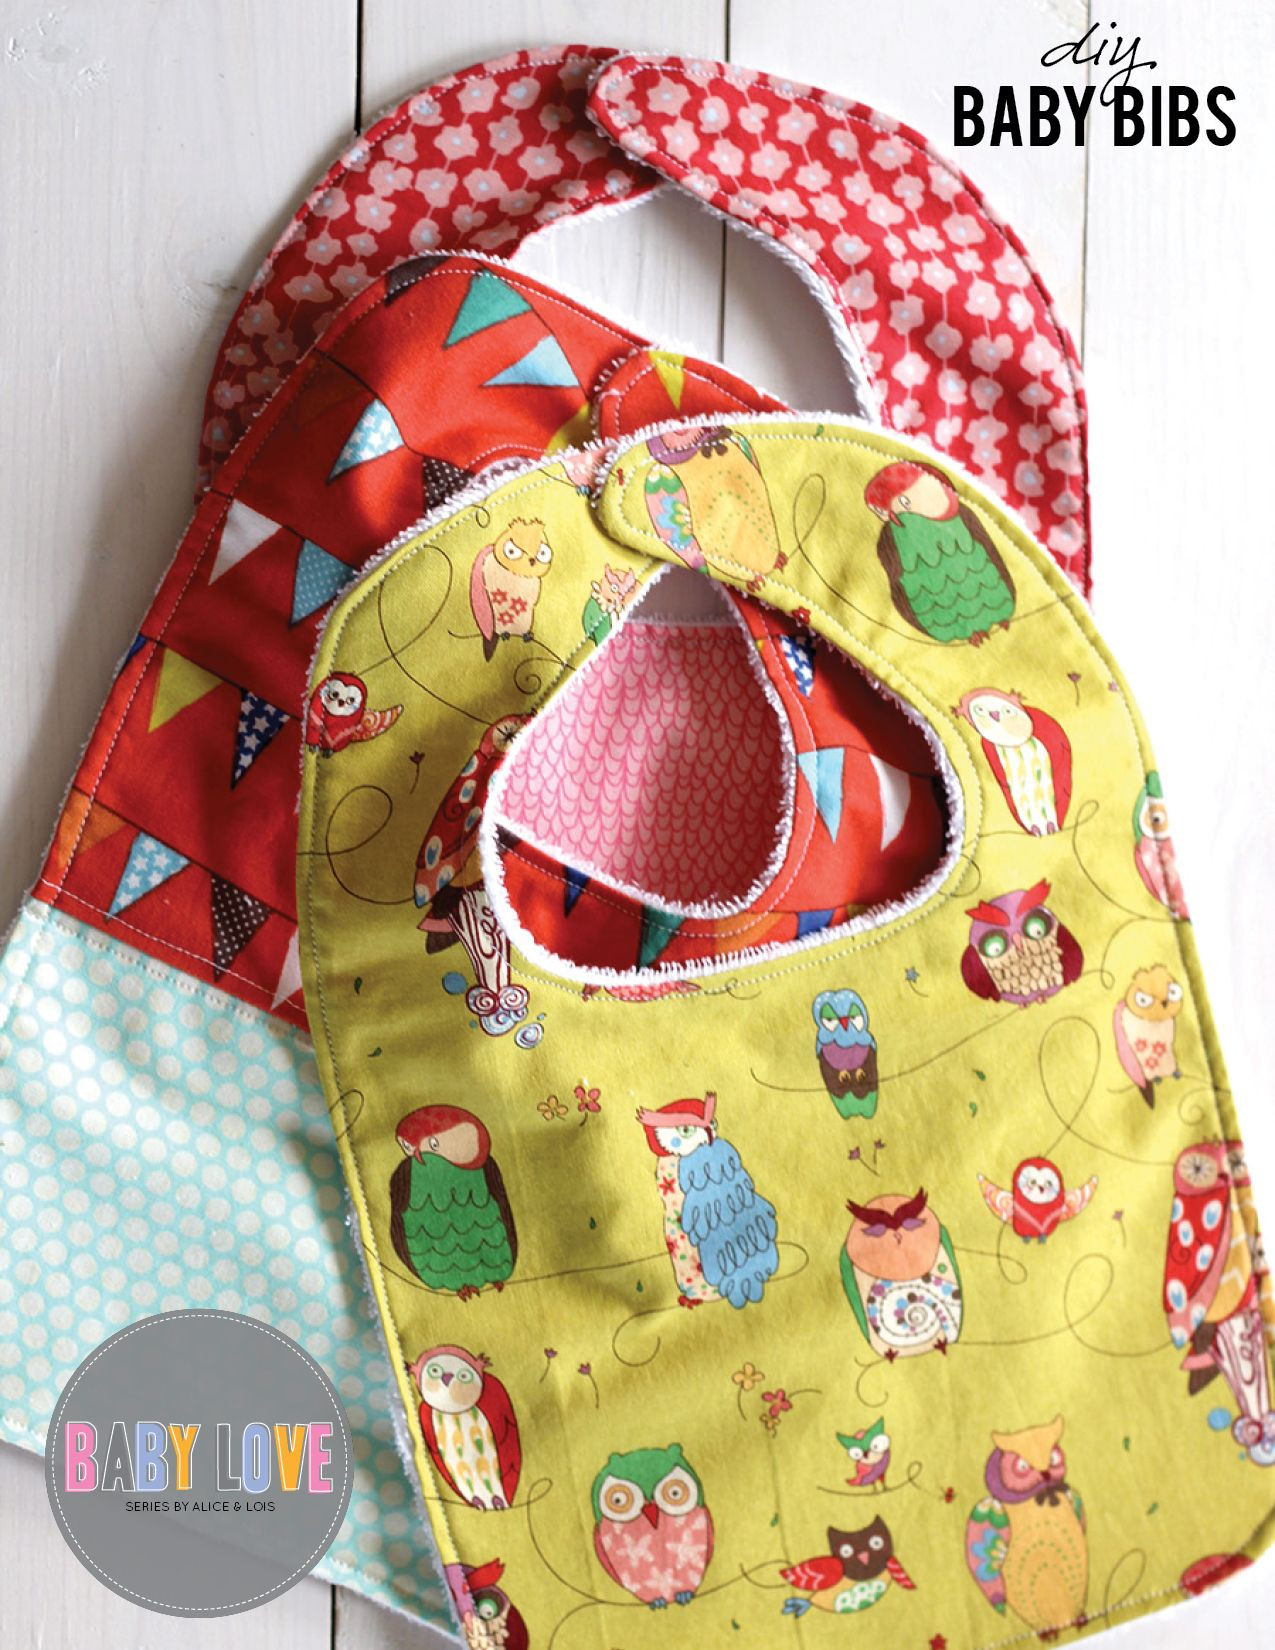 Best ideas about DIY Baby Bibs . Save or Pin DIY Baby bibs sewing tutorial Sewing crafts Now.